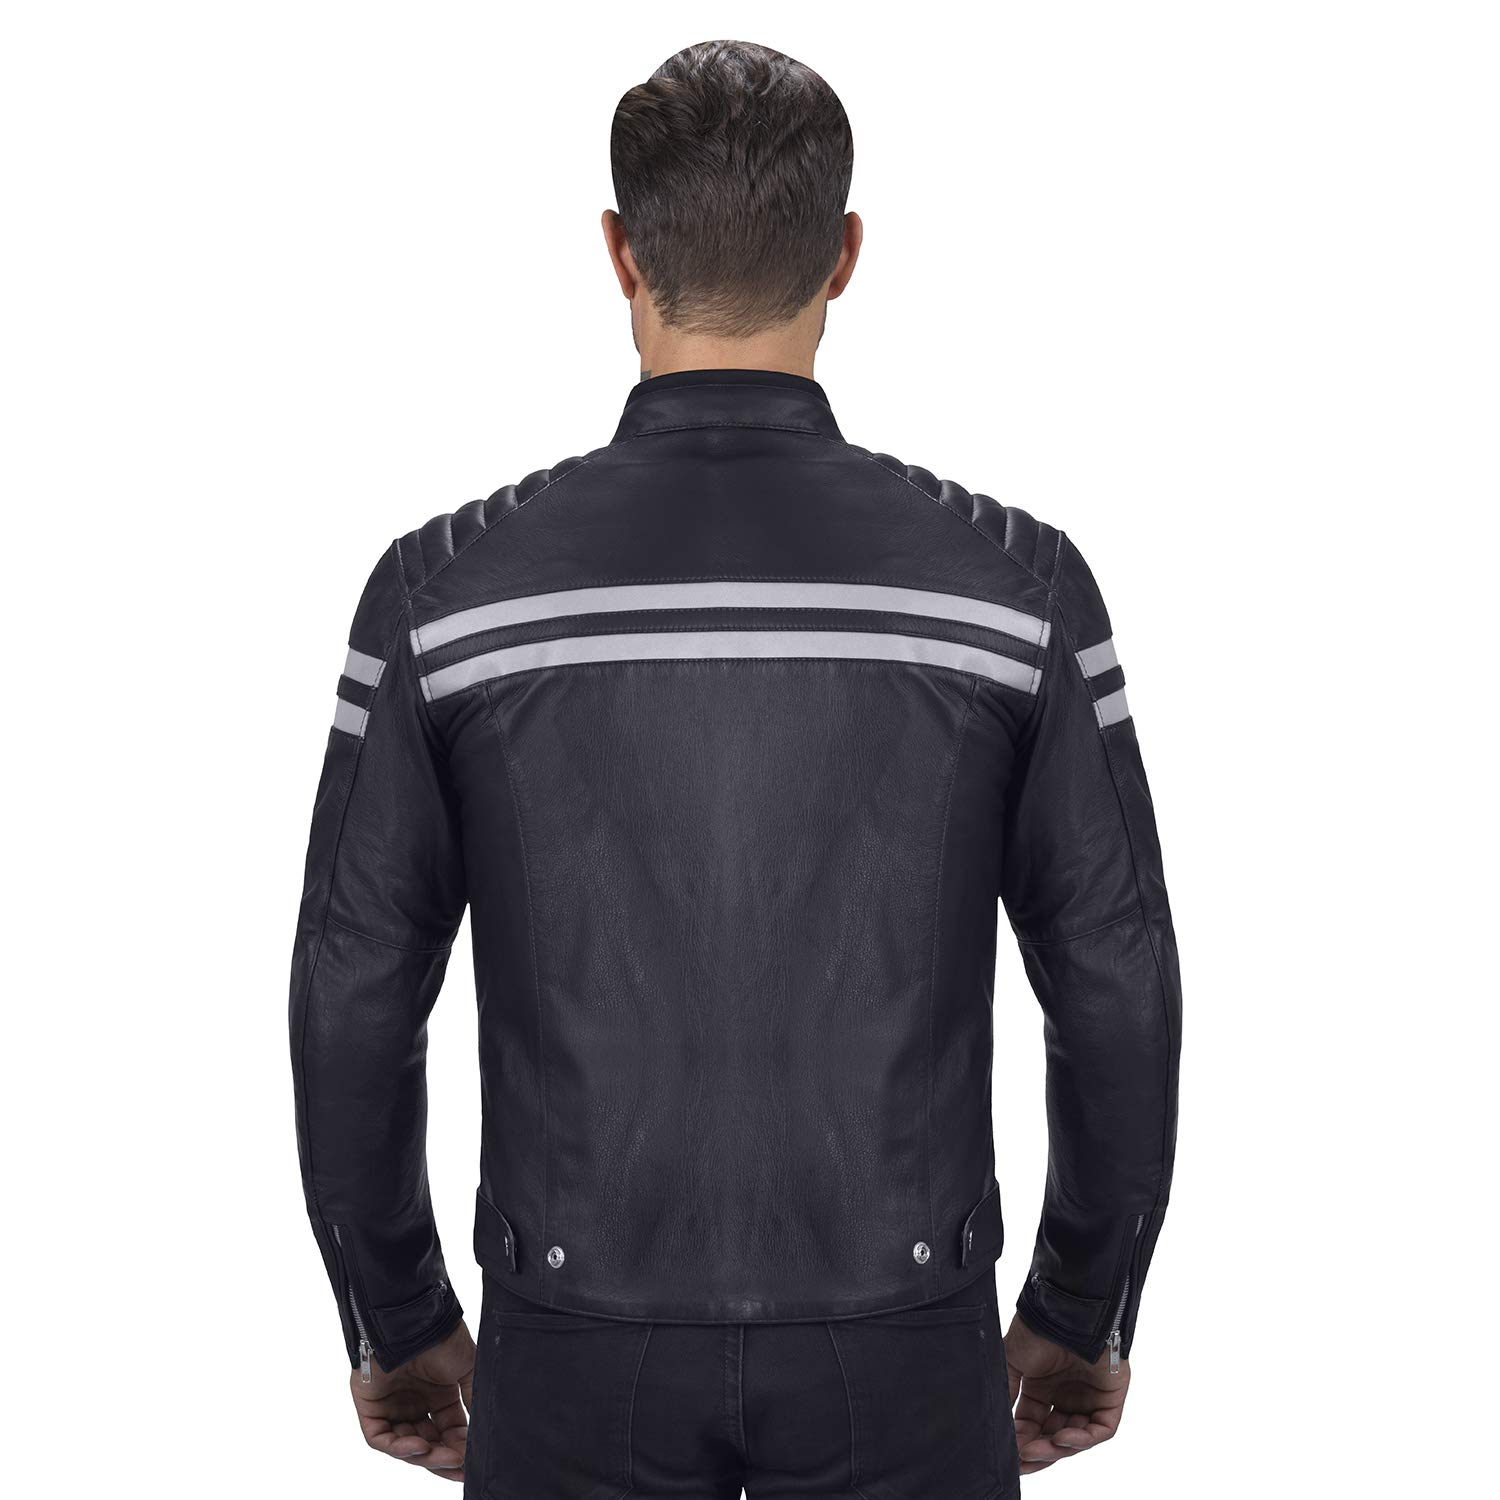 Viking Cycle Bloodaxe Leather Motorcycle Jacket for Men (X-Small) by Viking Cycle (Image #3)